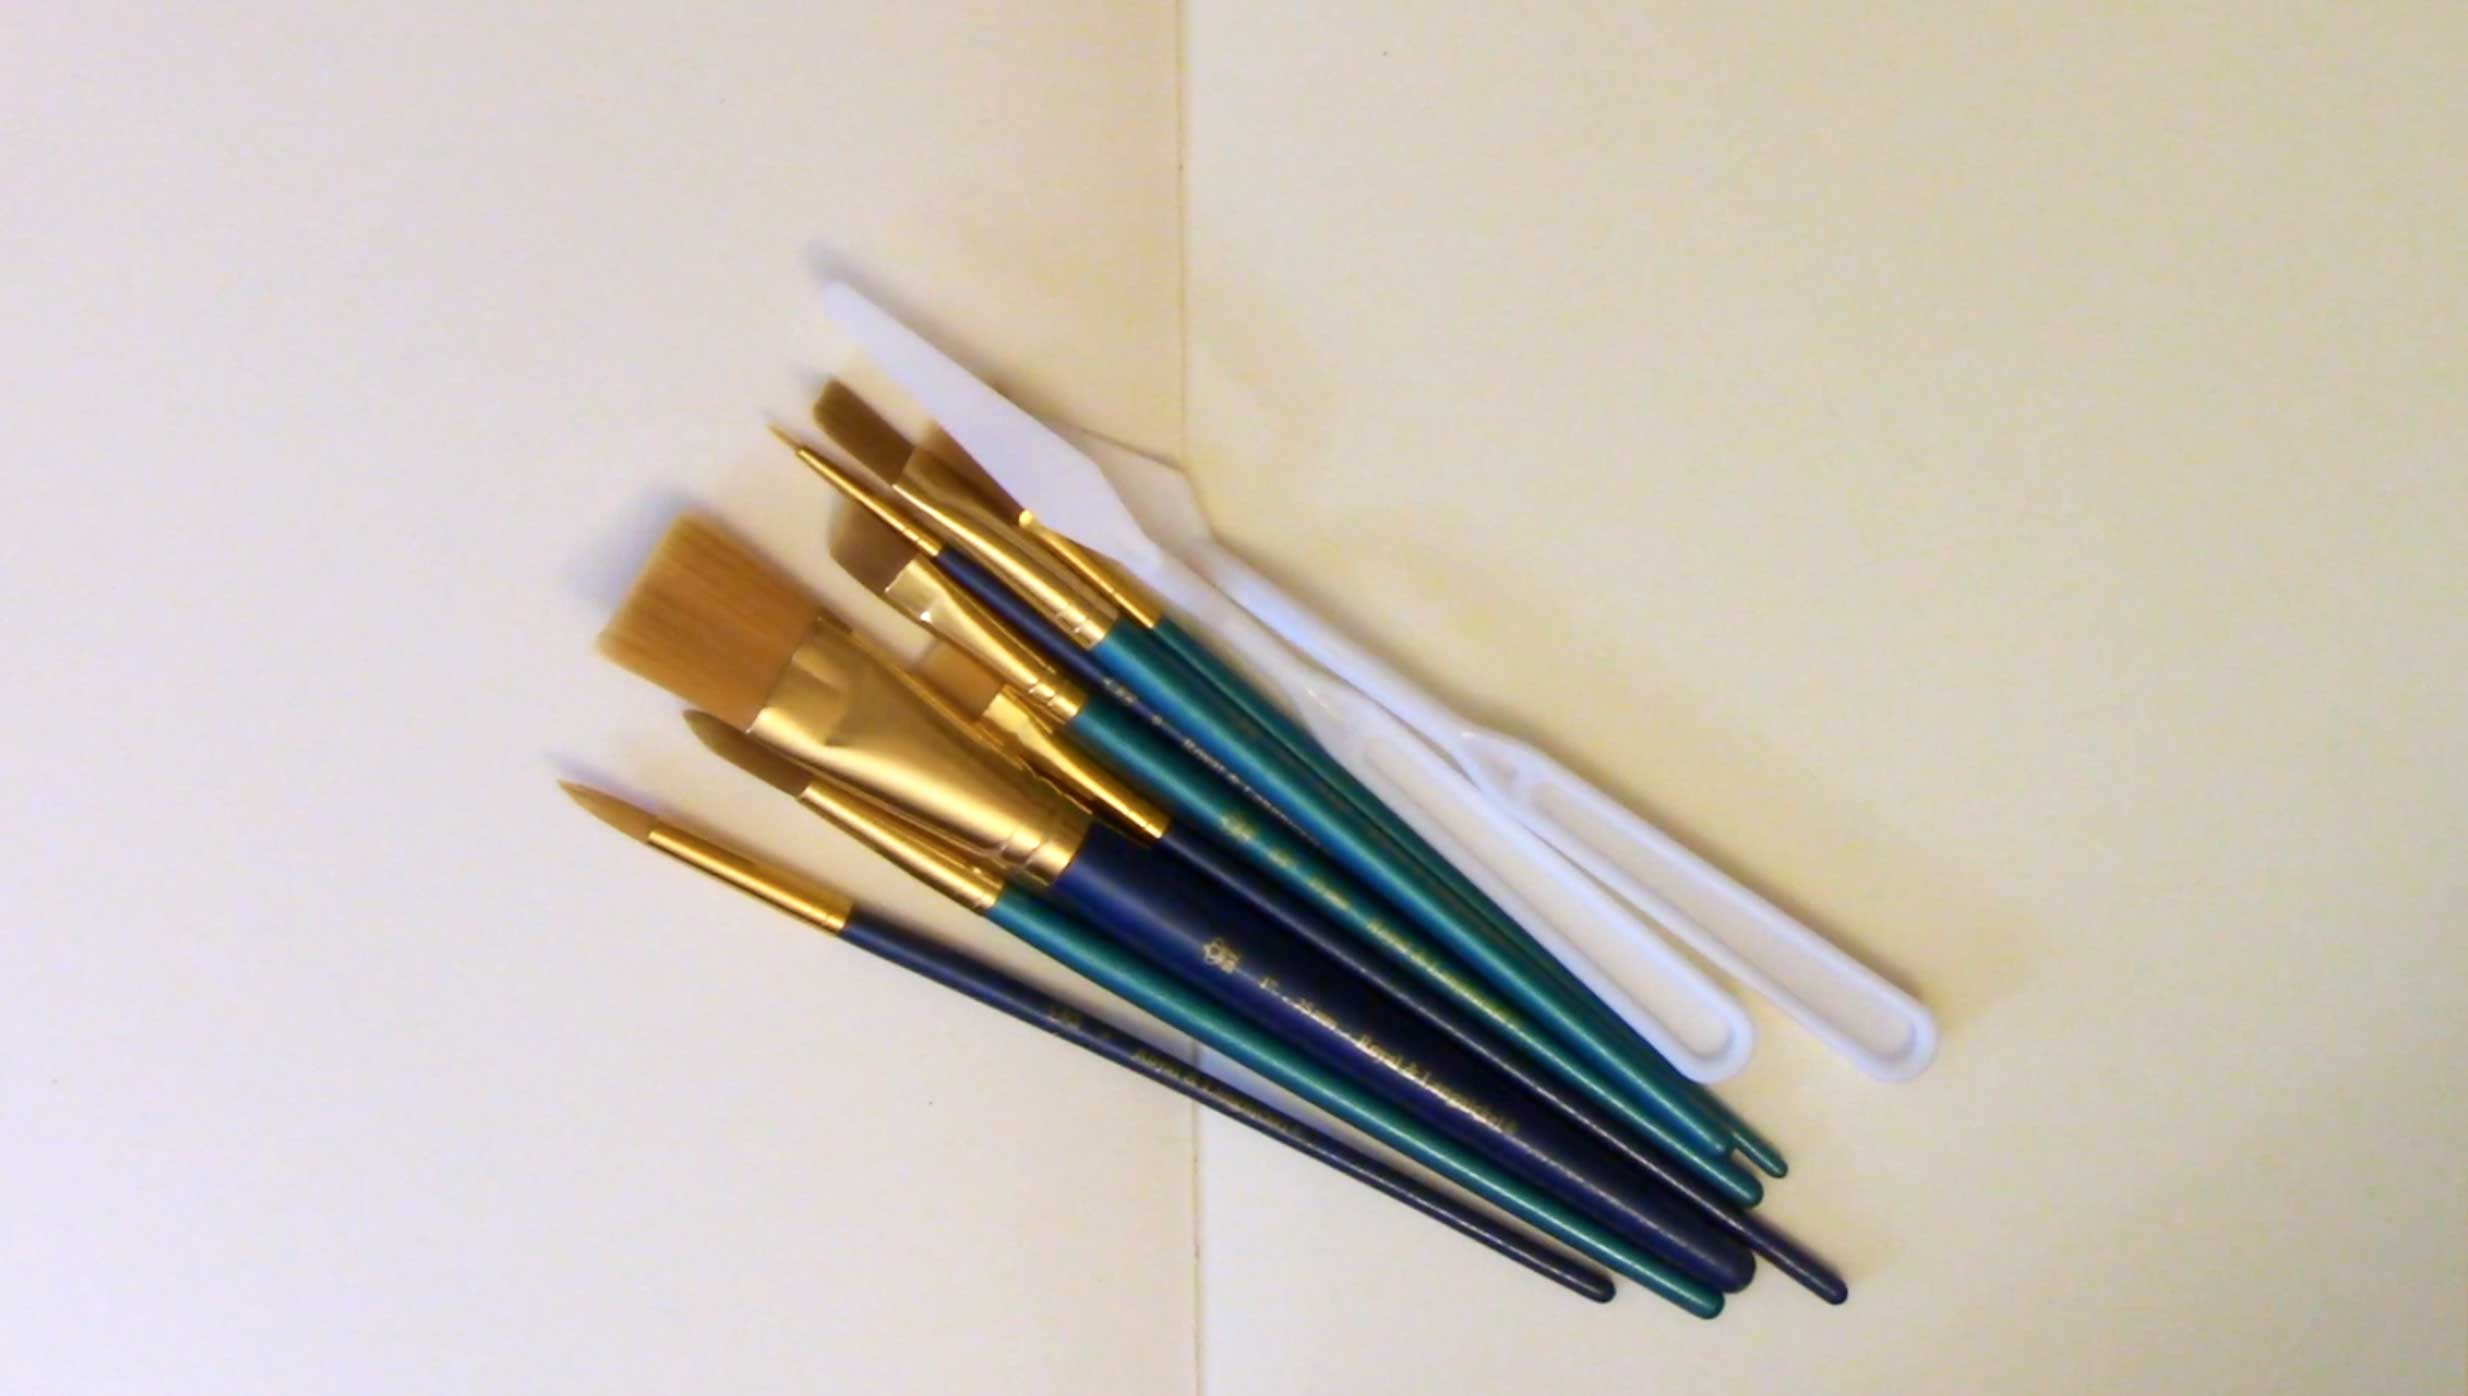 Basic Acrylic Paint Brushes